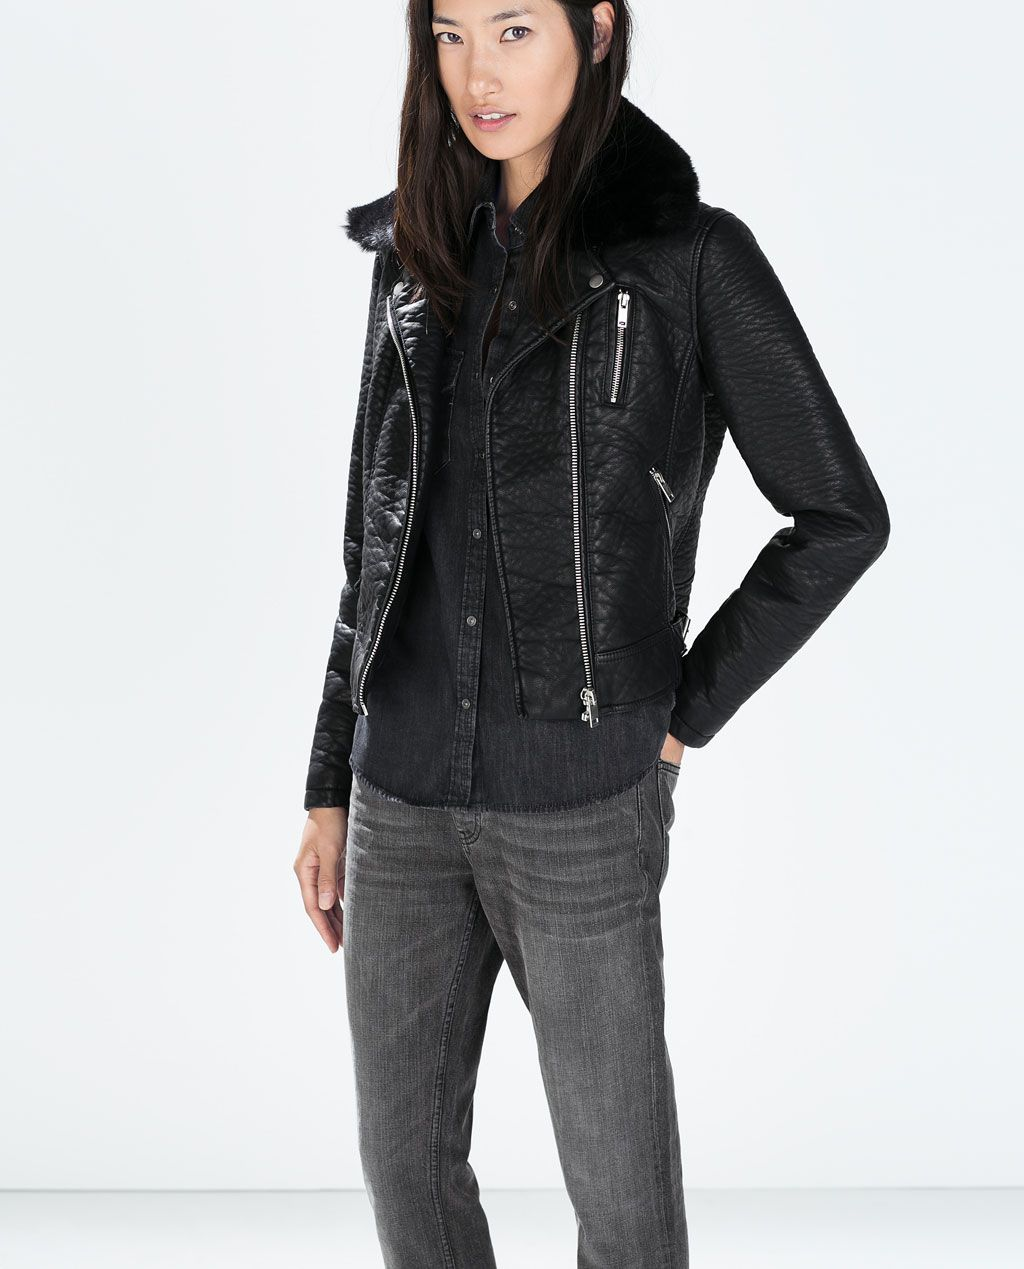 025e4f0c Image 2 of FAUX LEATHER JACKET WITH DETACHABLE FUR COLLAR from Zara ...